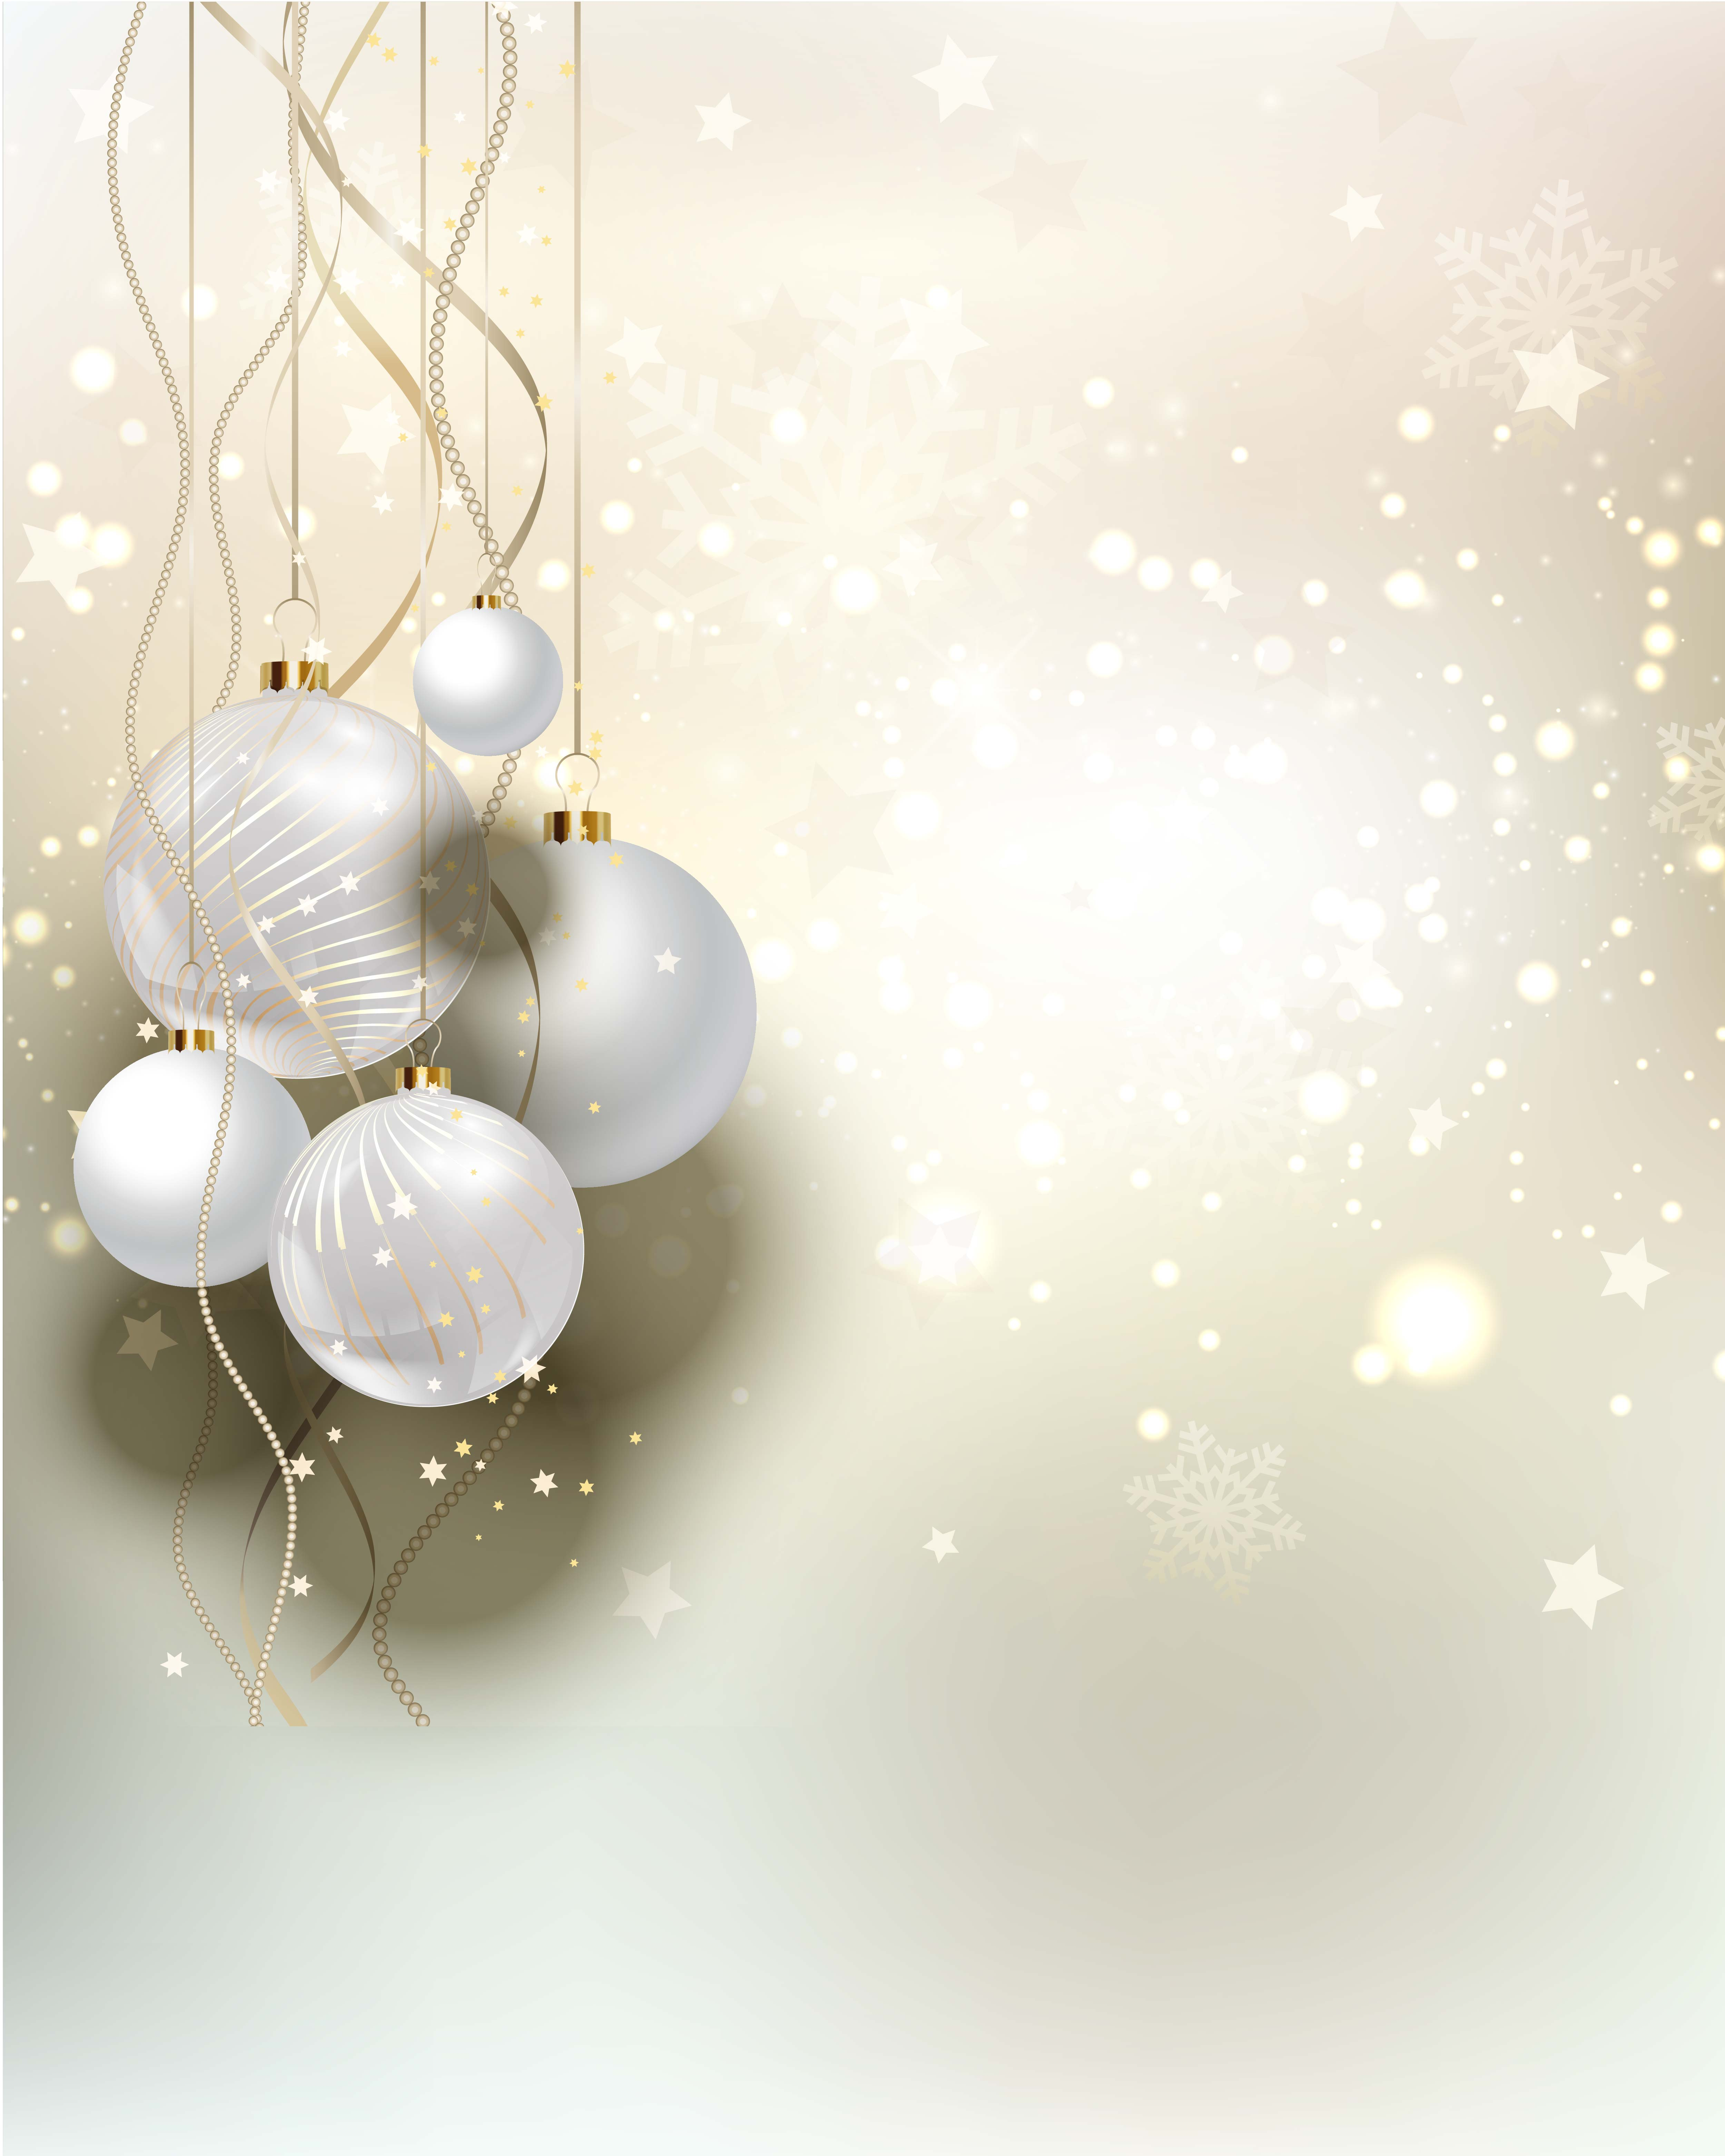 Christmas Backgrounds.Us 9 31 33 Off Allenjoy Photography Backdrops Abstract Snow Winter Ball Kids Photocall Vinyl Customize Photo Props Christmas Backgrounds In